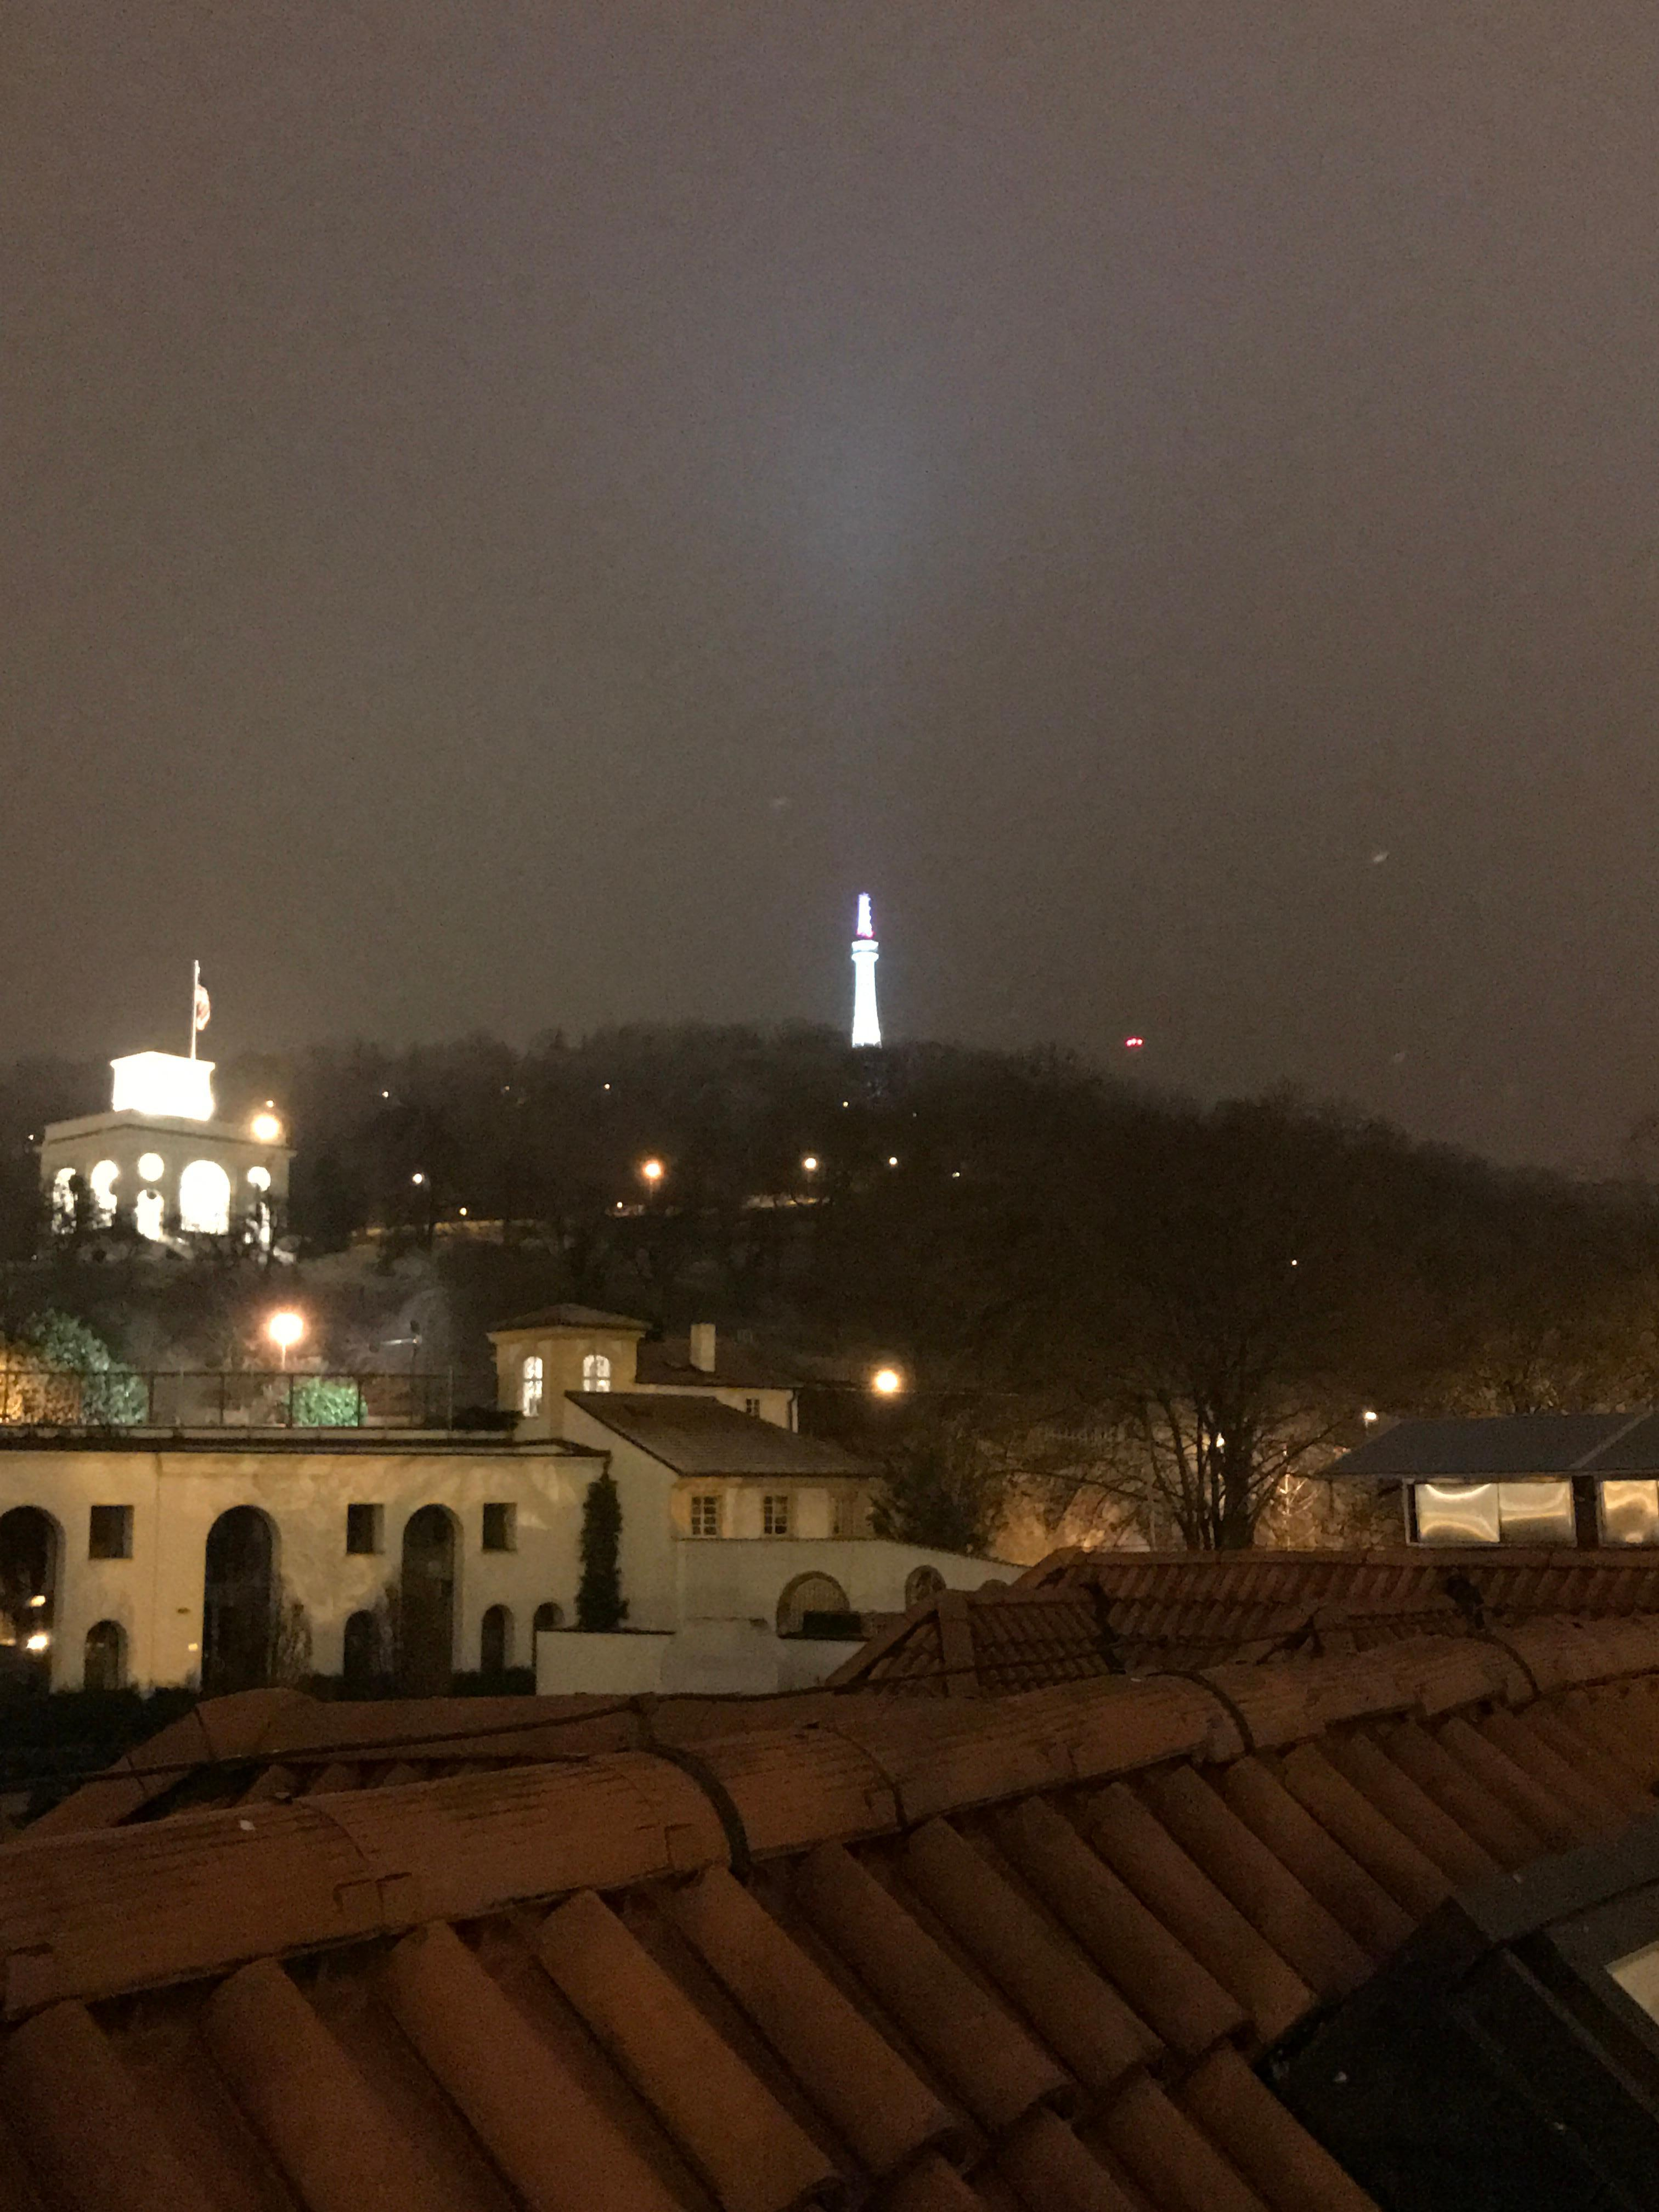 View from the rooftop garden